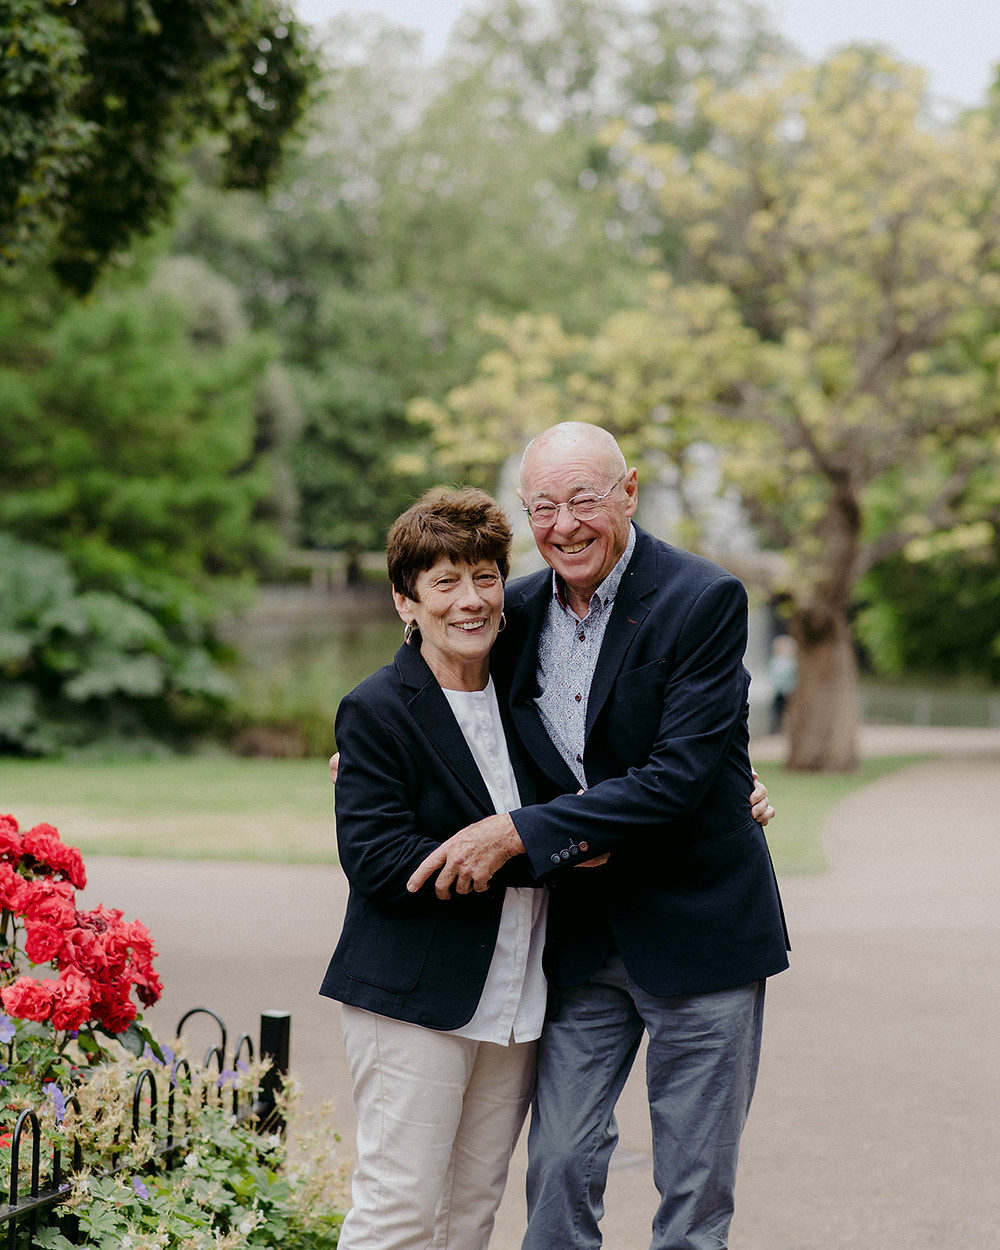 photo of older couple on park